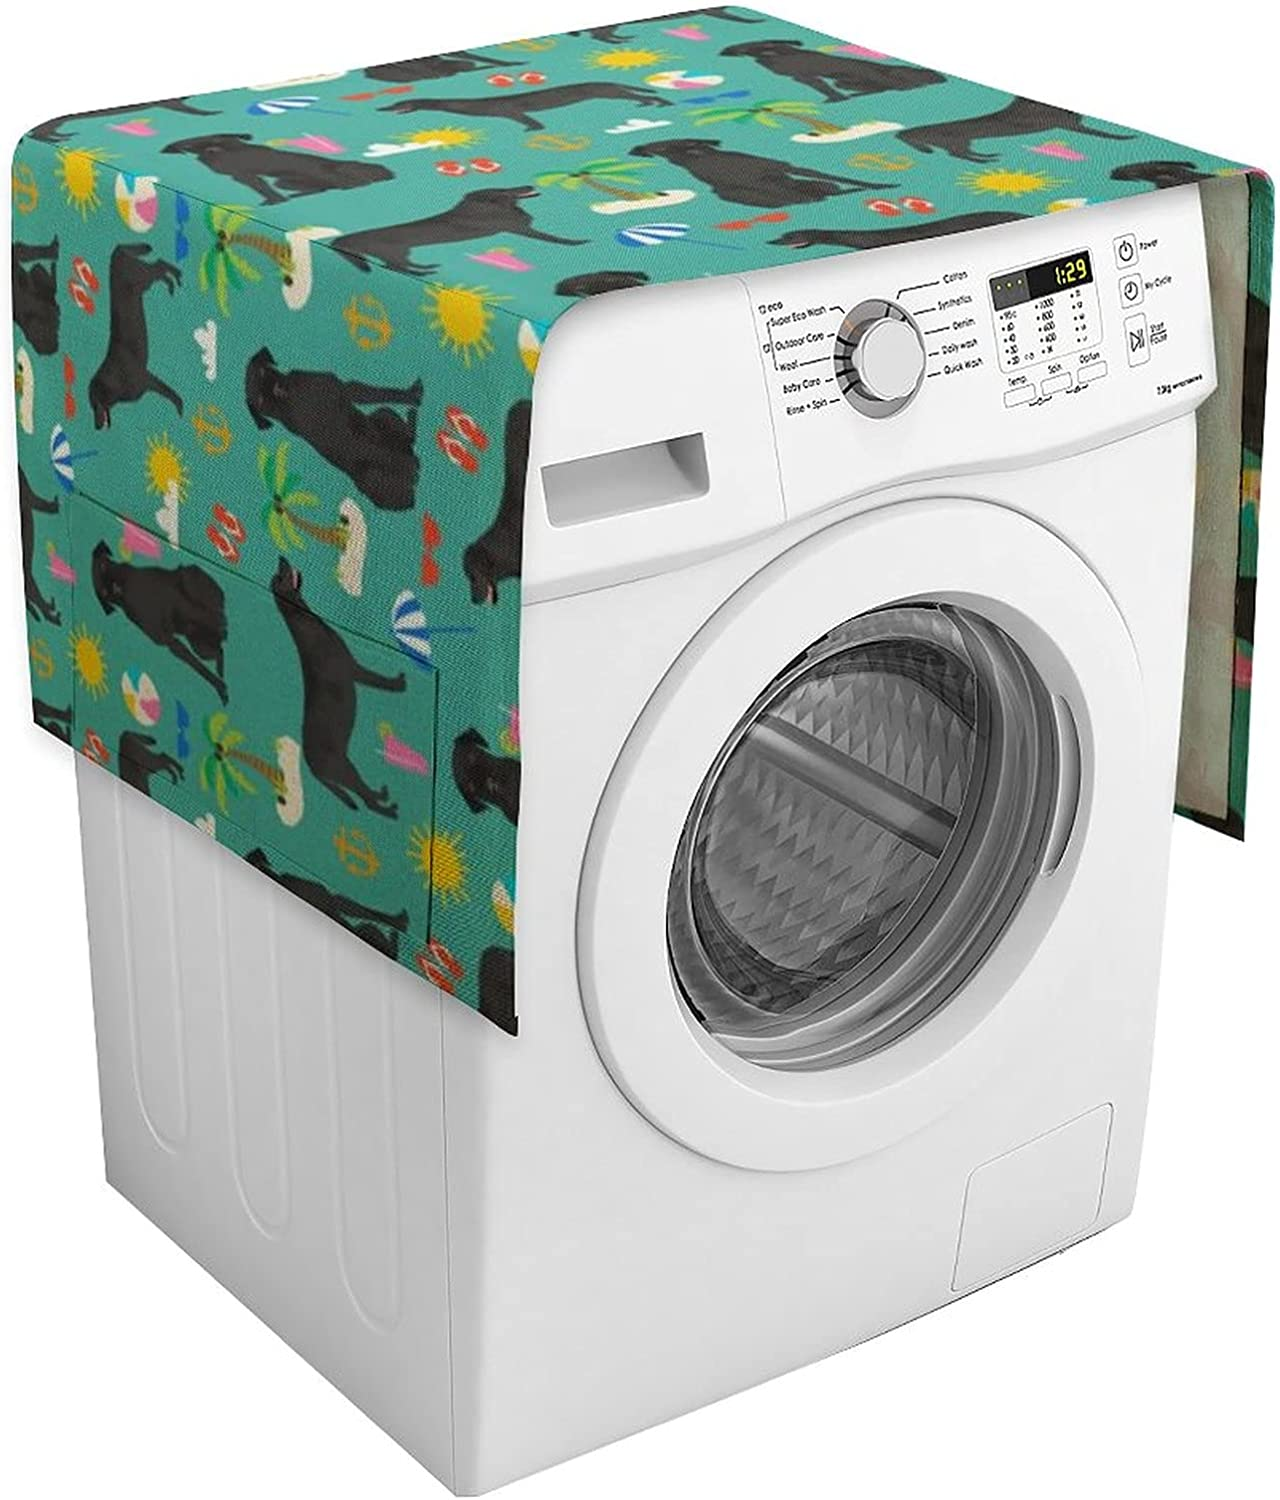 Multi-Purpose Washing Ranking integrated 1st place Machine Covers Protector Limited price sale Appliance Washer